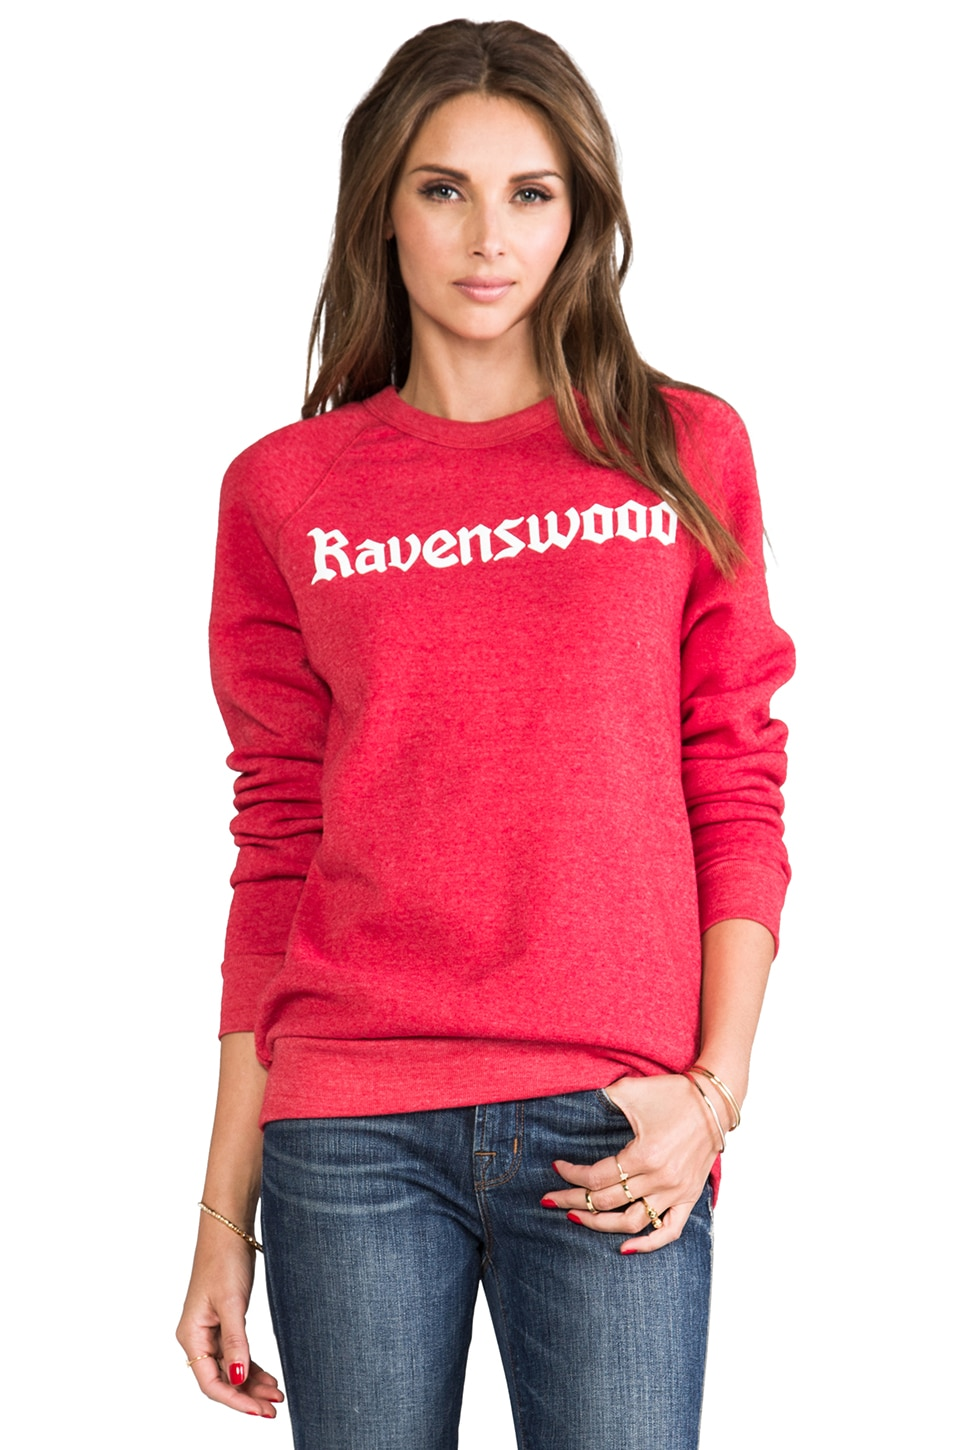 Rachel Antonoff Ravenswood Sweatshirt Heathered Red